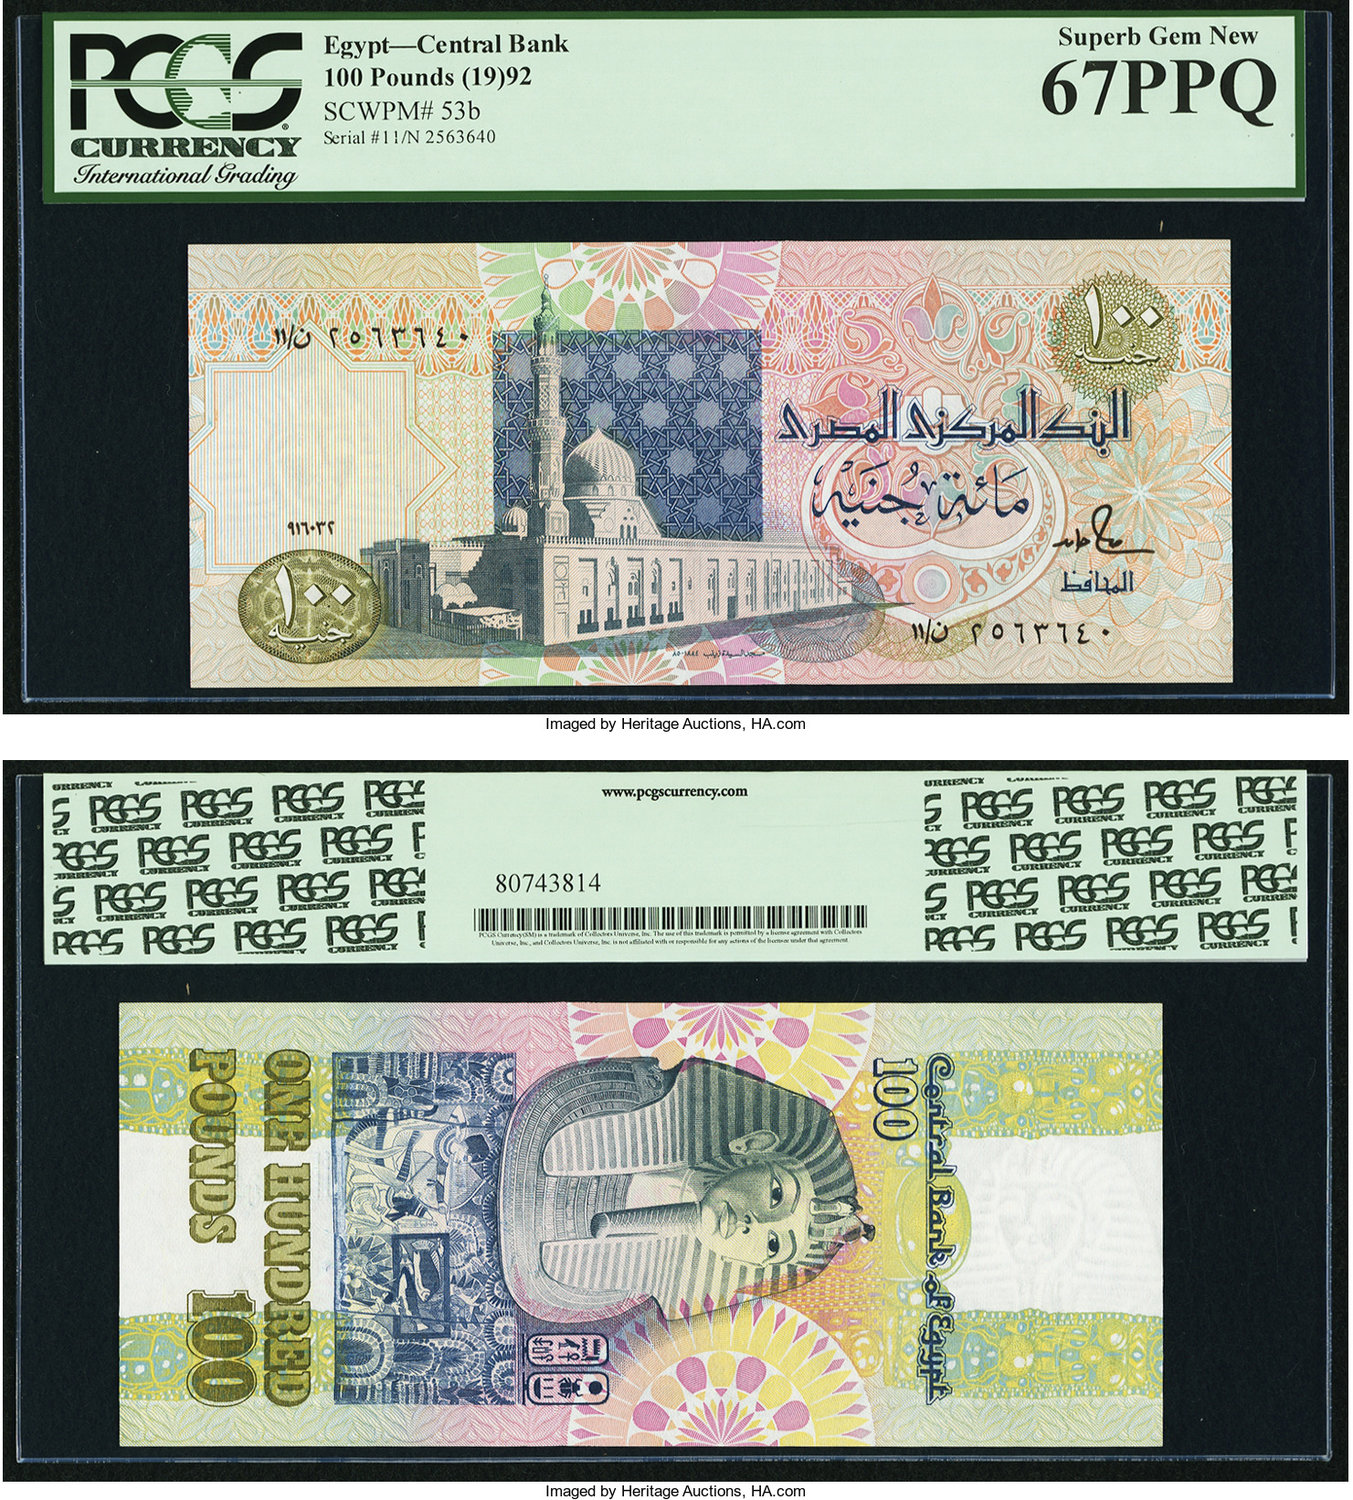 World Currency Egypt Central Bank Of 100 Pounds 19 92 Pick 53b This Fully Original Has Beautiful